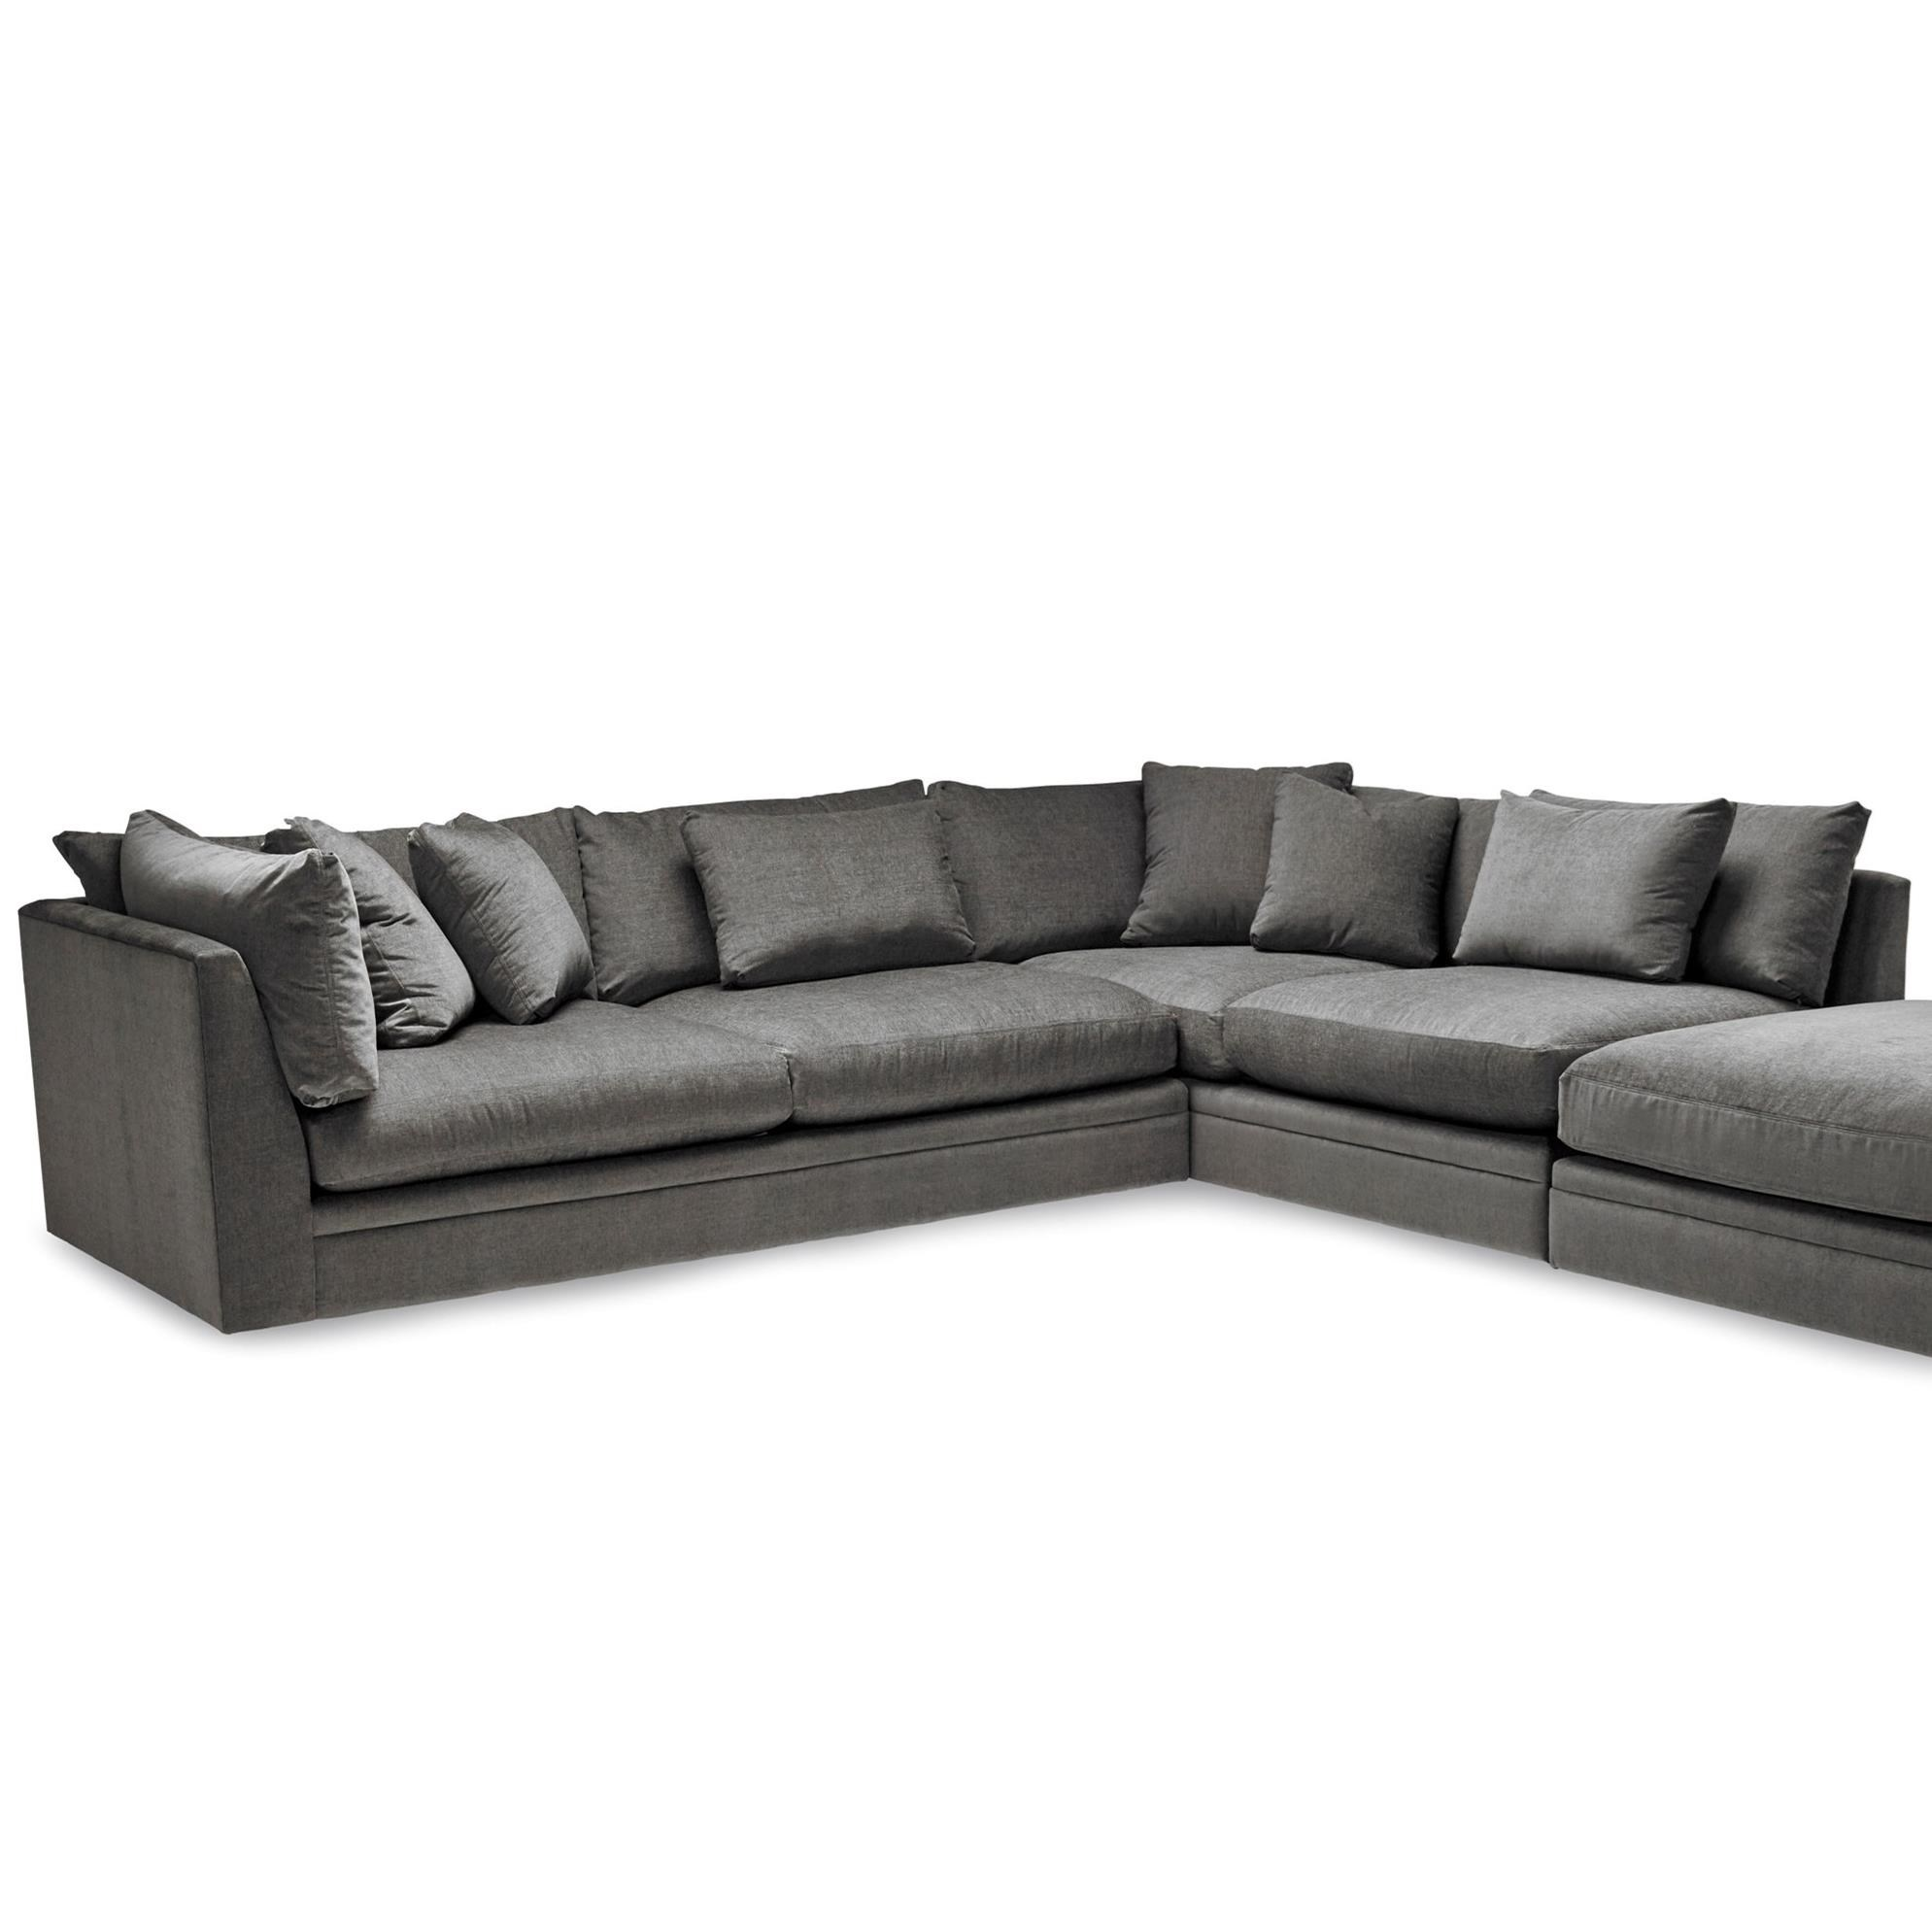 Stylus 1414 2 Pc Sectional - Item Number BRADFORD SECTIONAL no OTT-Entice Gr  sc 1 st  Stoney Creek Furniture : sectional furniture toronto - Sectionals, Sofas & Couches